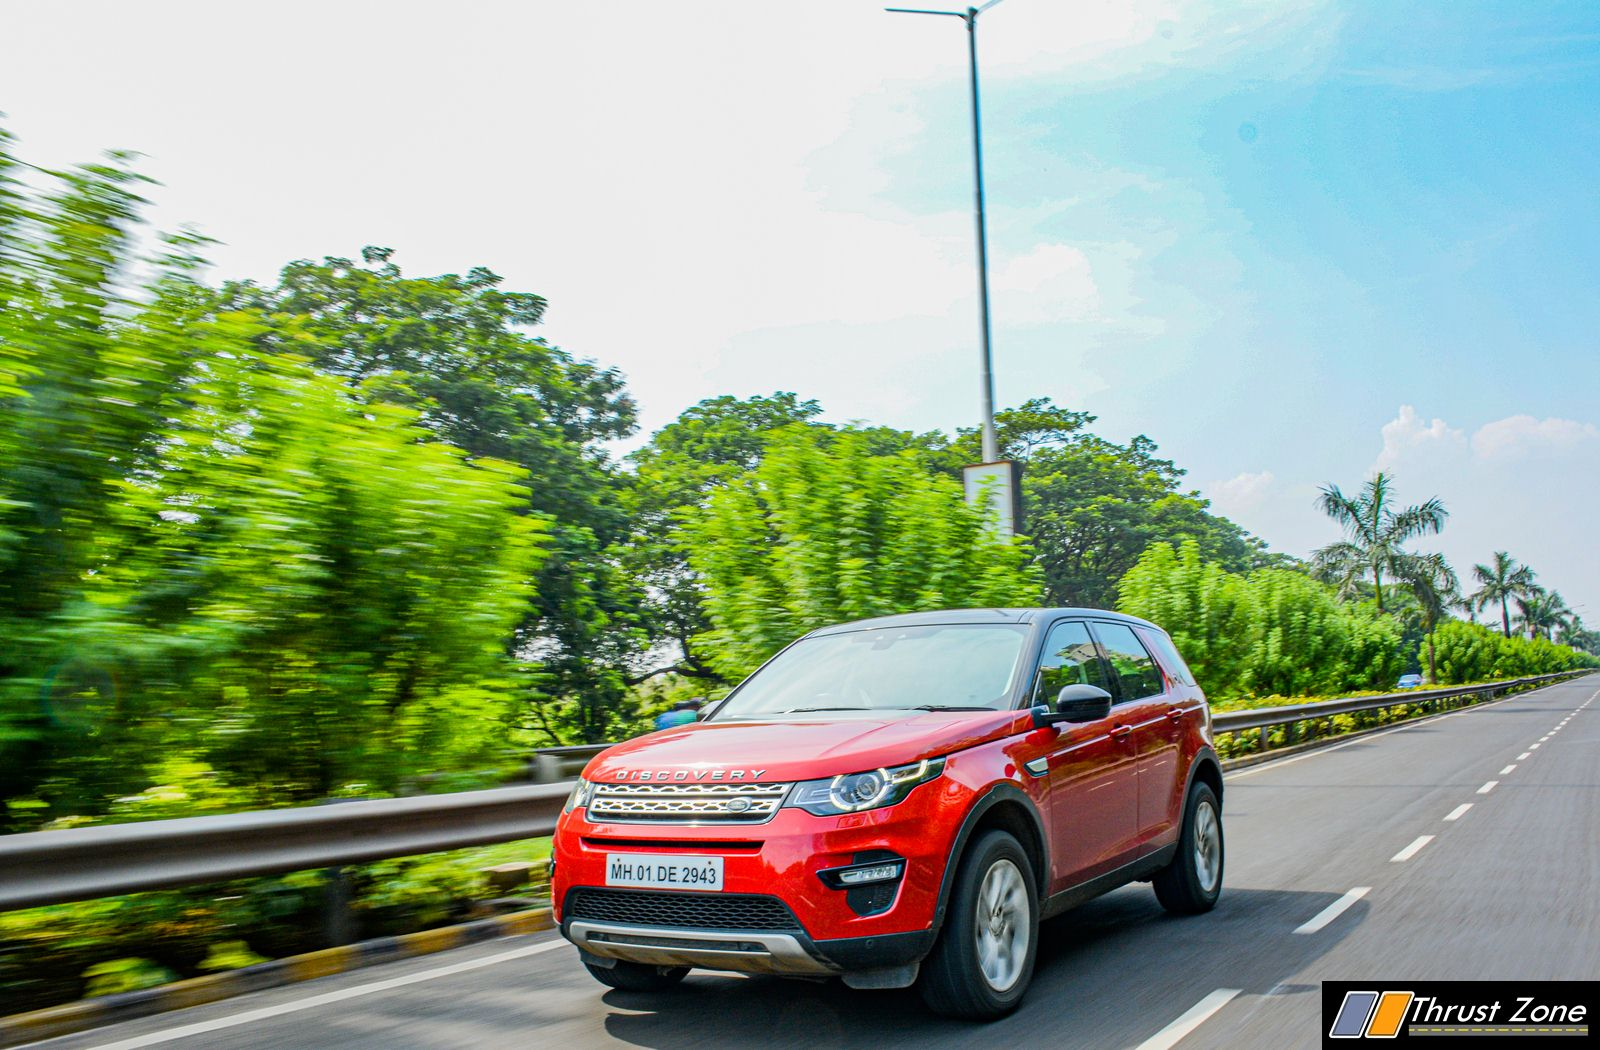 2019-Discovery-Sport-India-Review-18